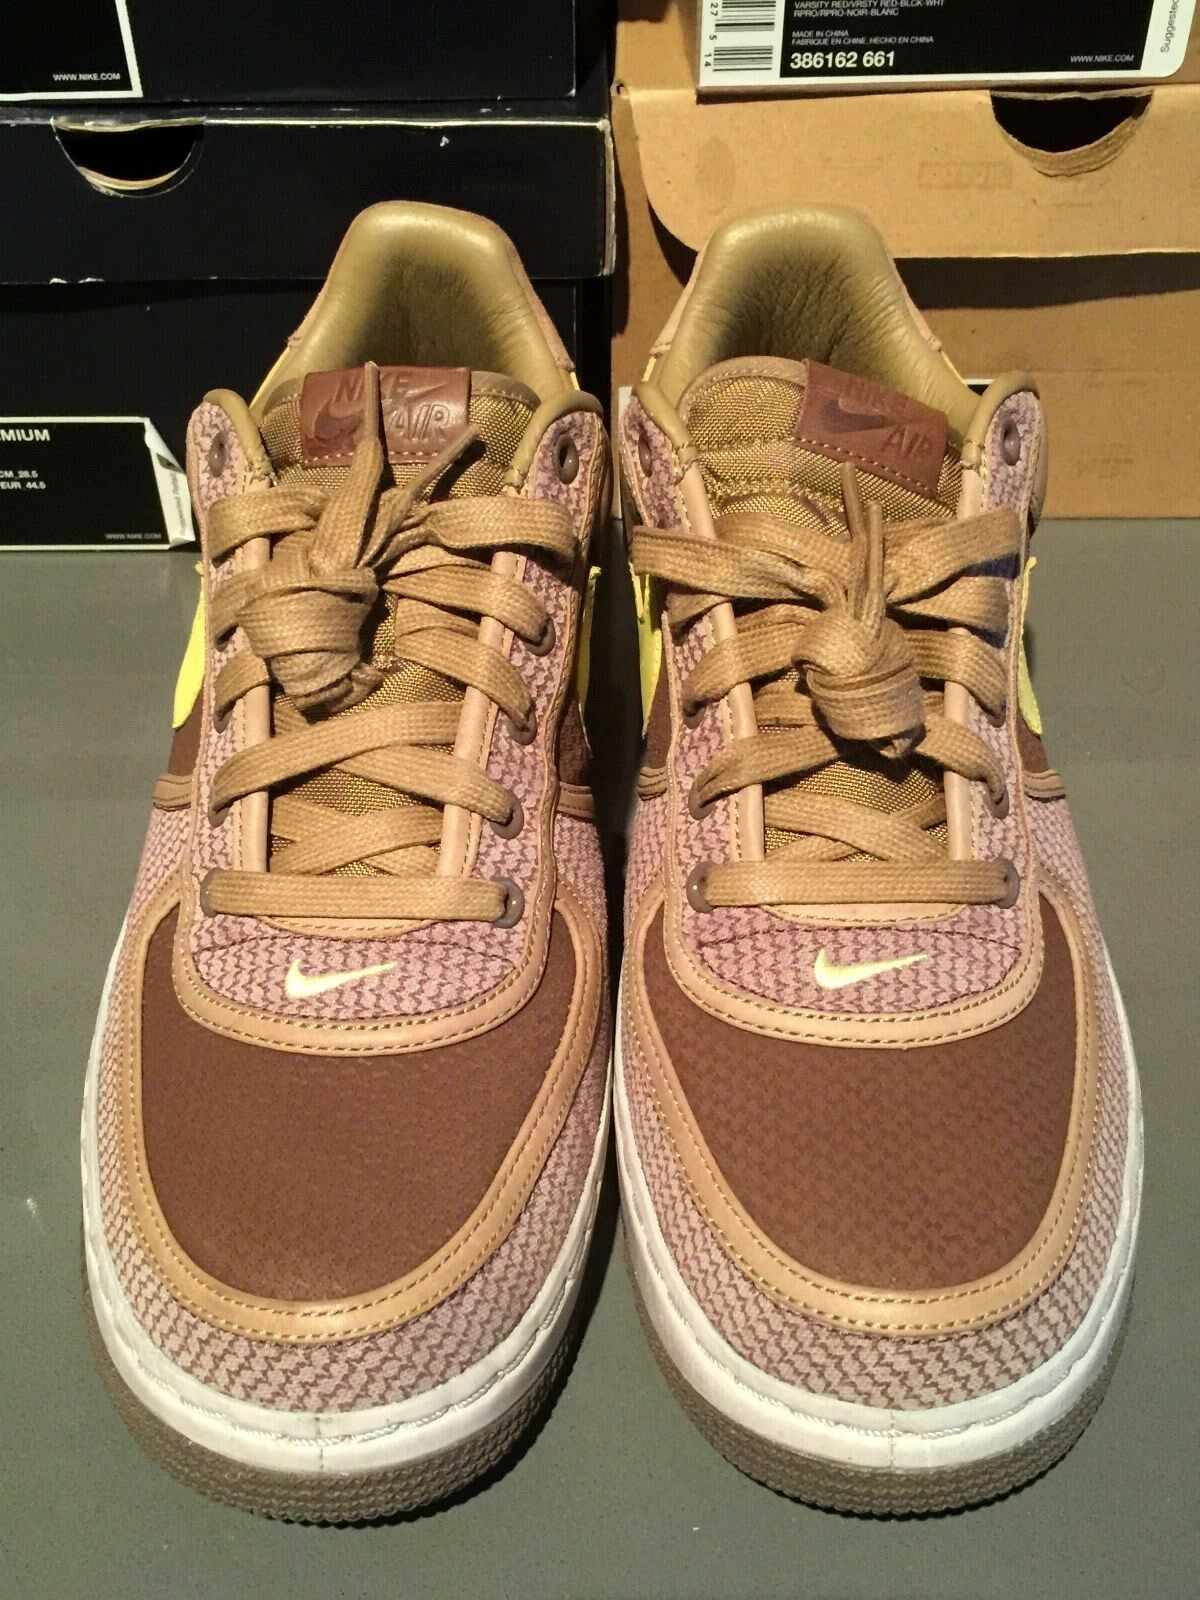 Nike Air Force 1 Insideout Priority, Sz 11, 314770 271